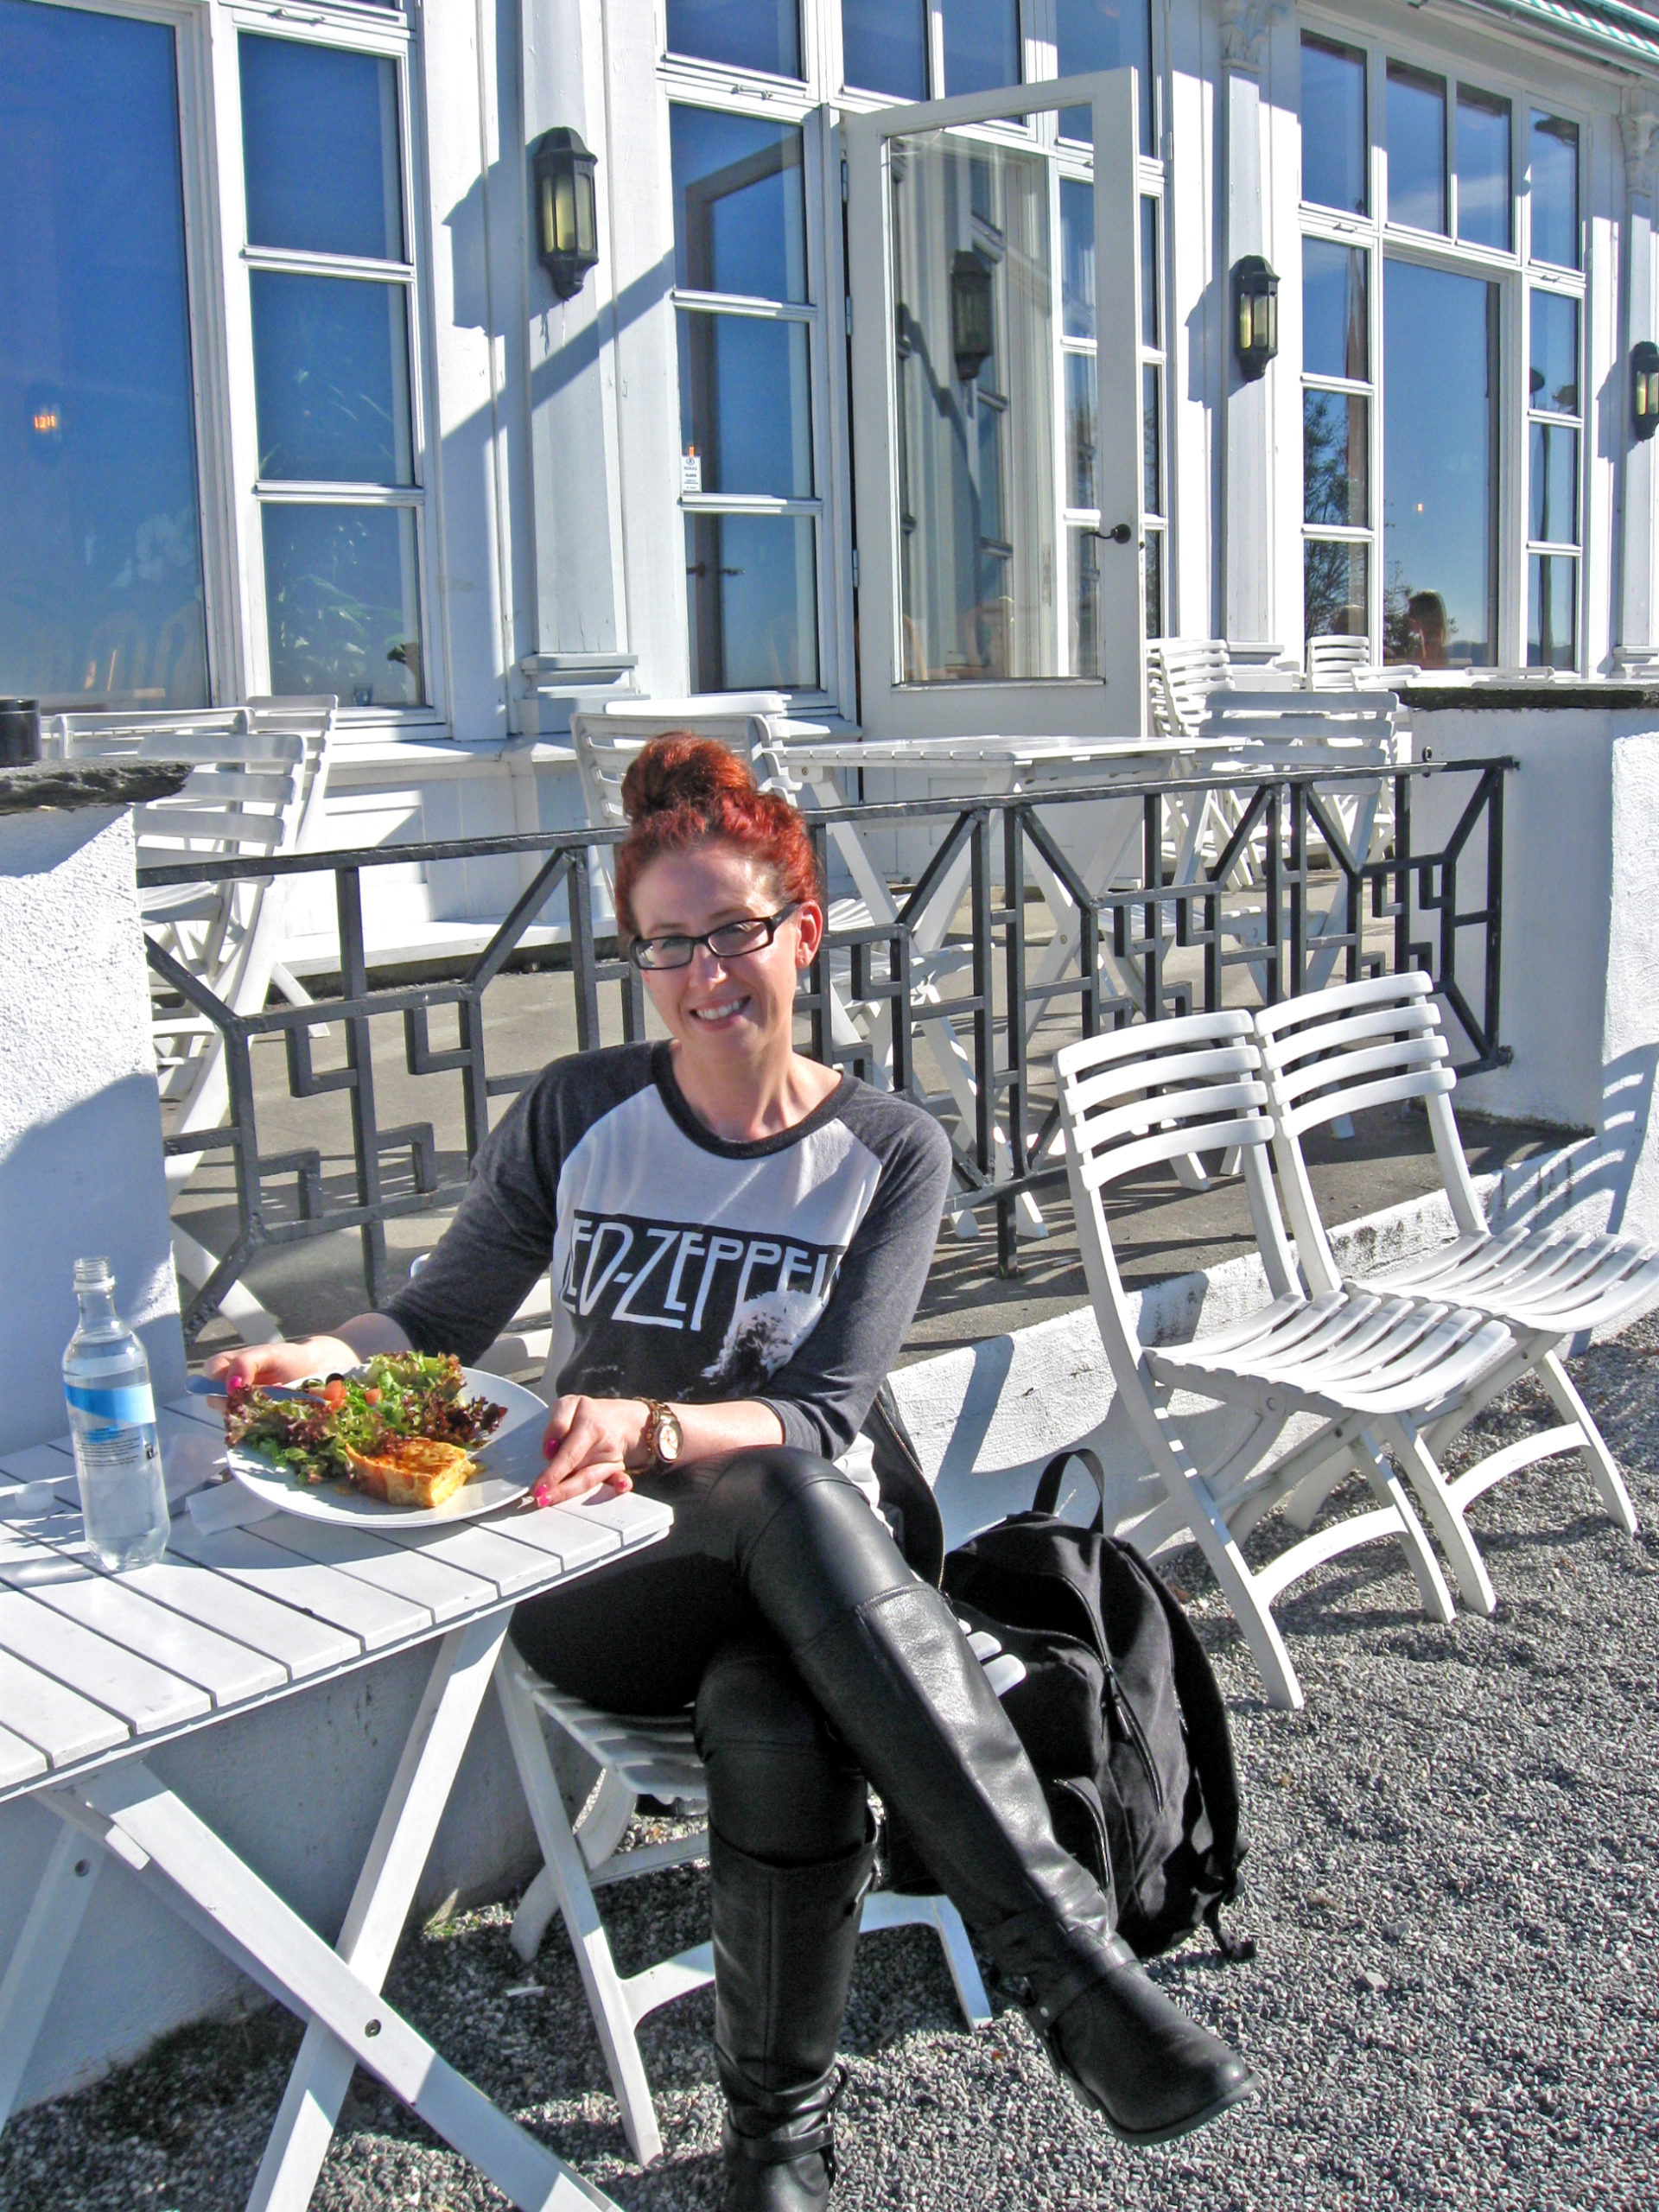 How To Feel Confident Eating Alone While Travelling Solo